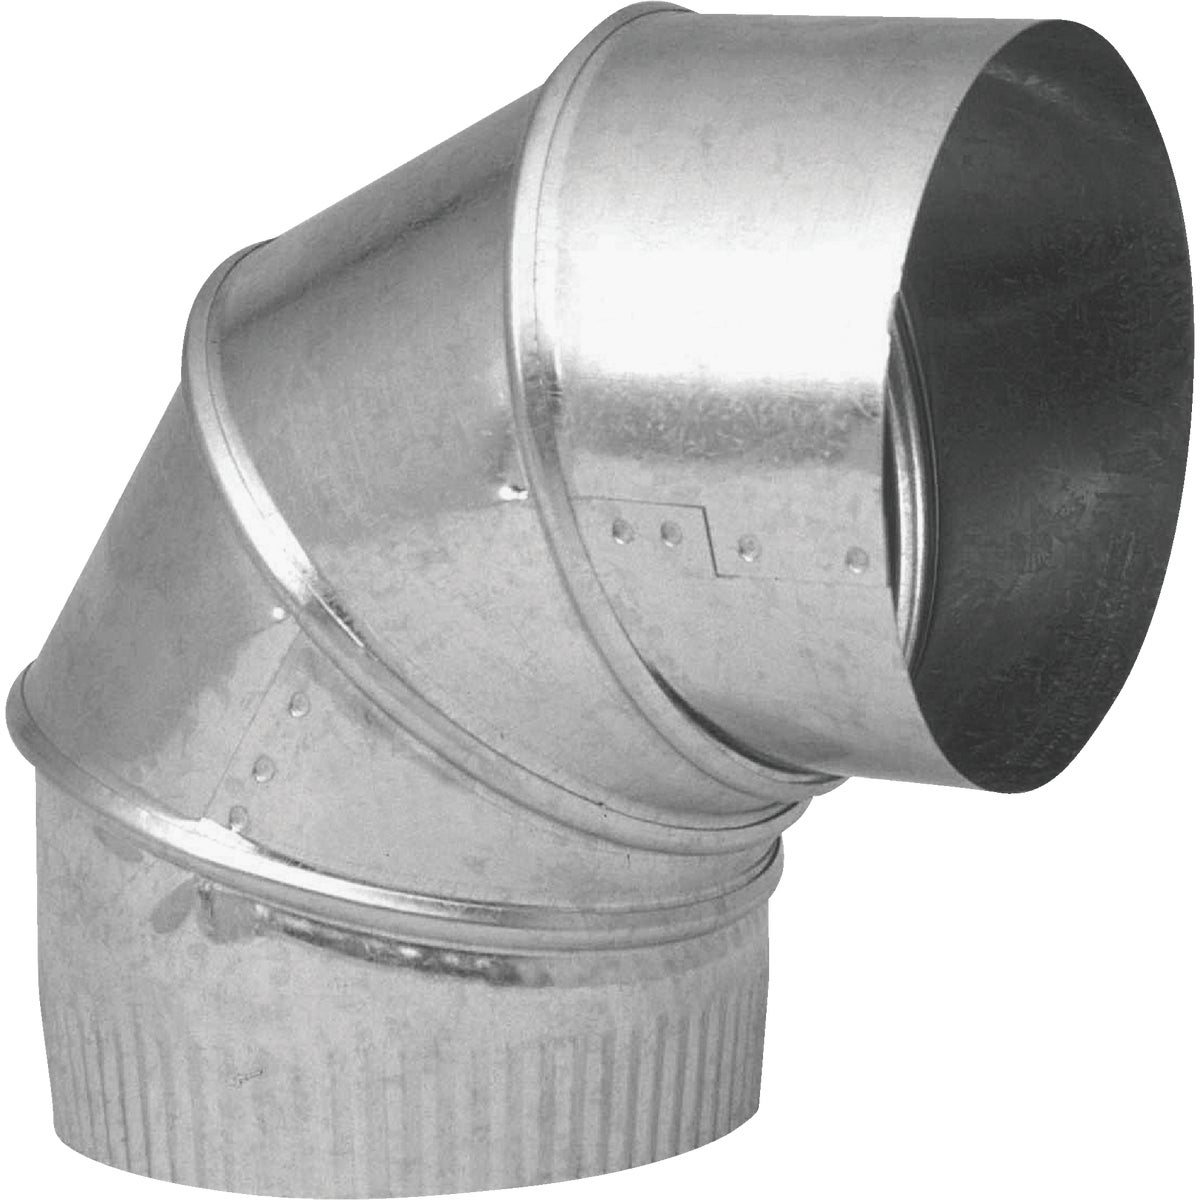 "7"" 26GA GALV ADJ ELBOW - GV0299-C by Imperial Mfg Group"